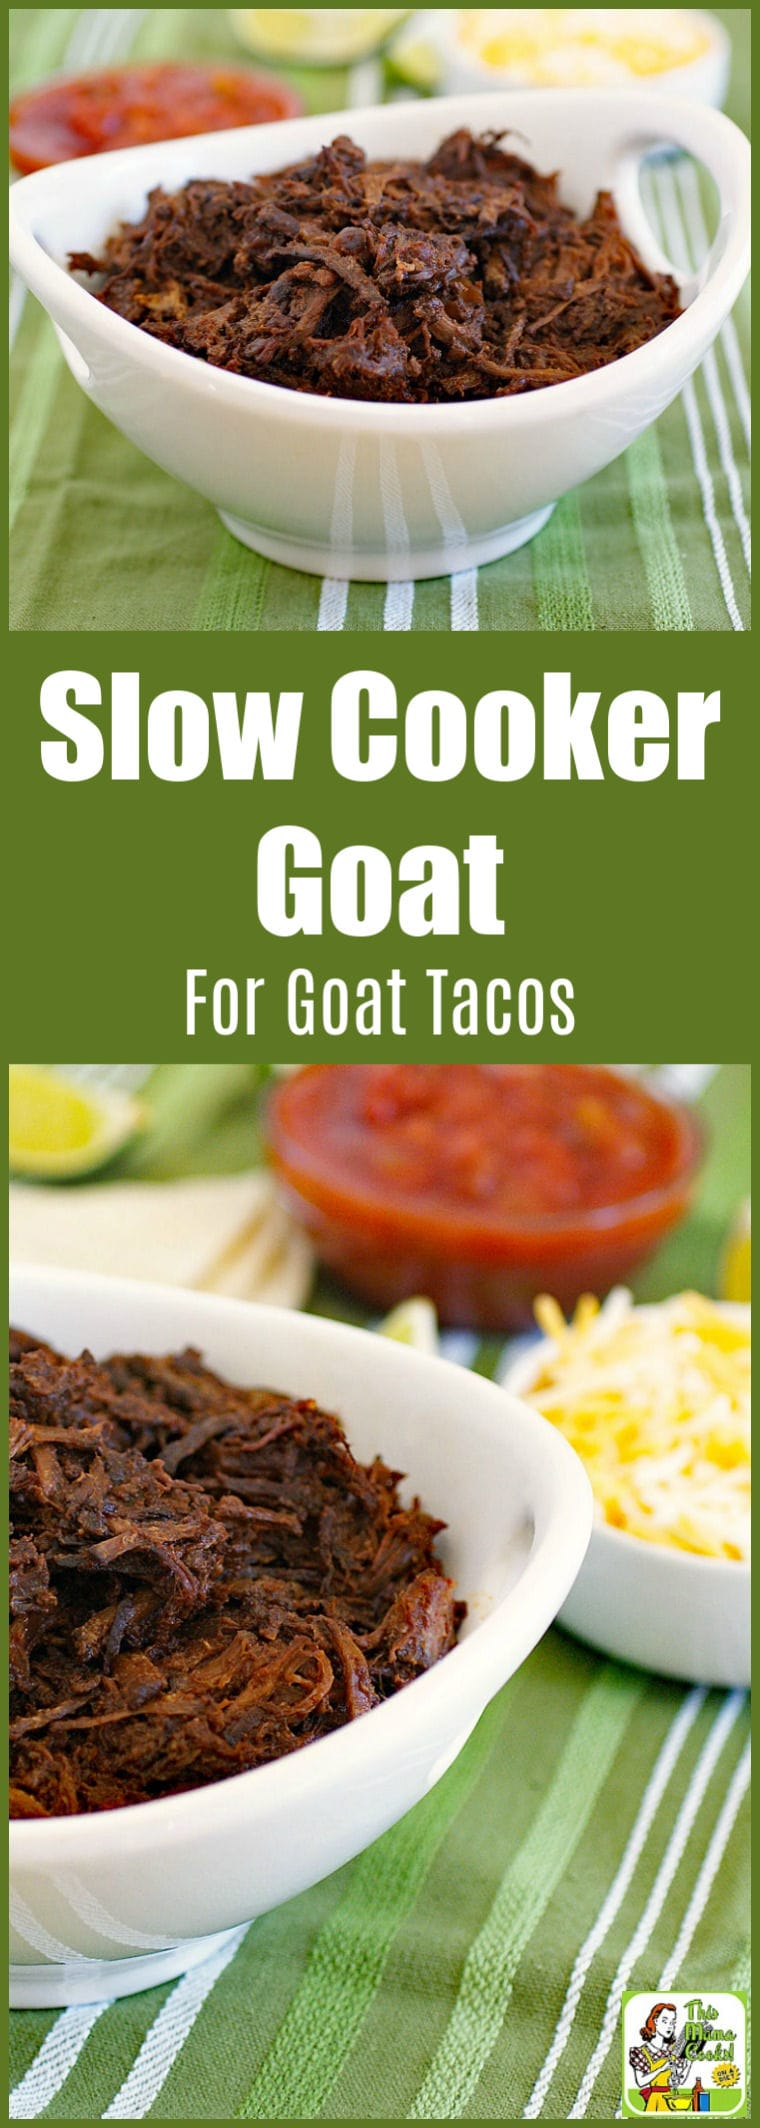 Slow Cooker Goat Recipe